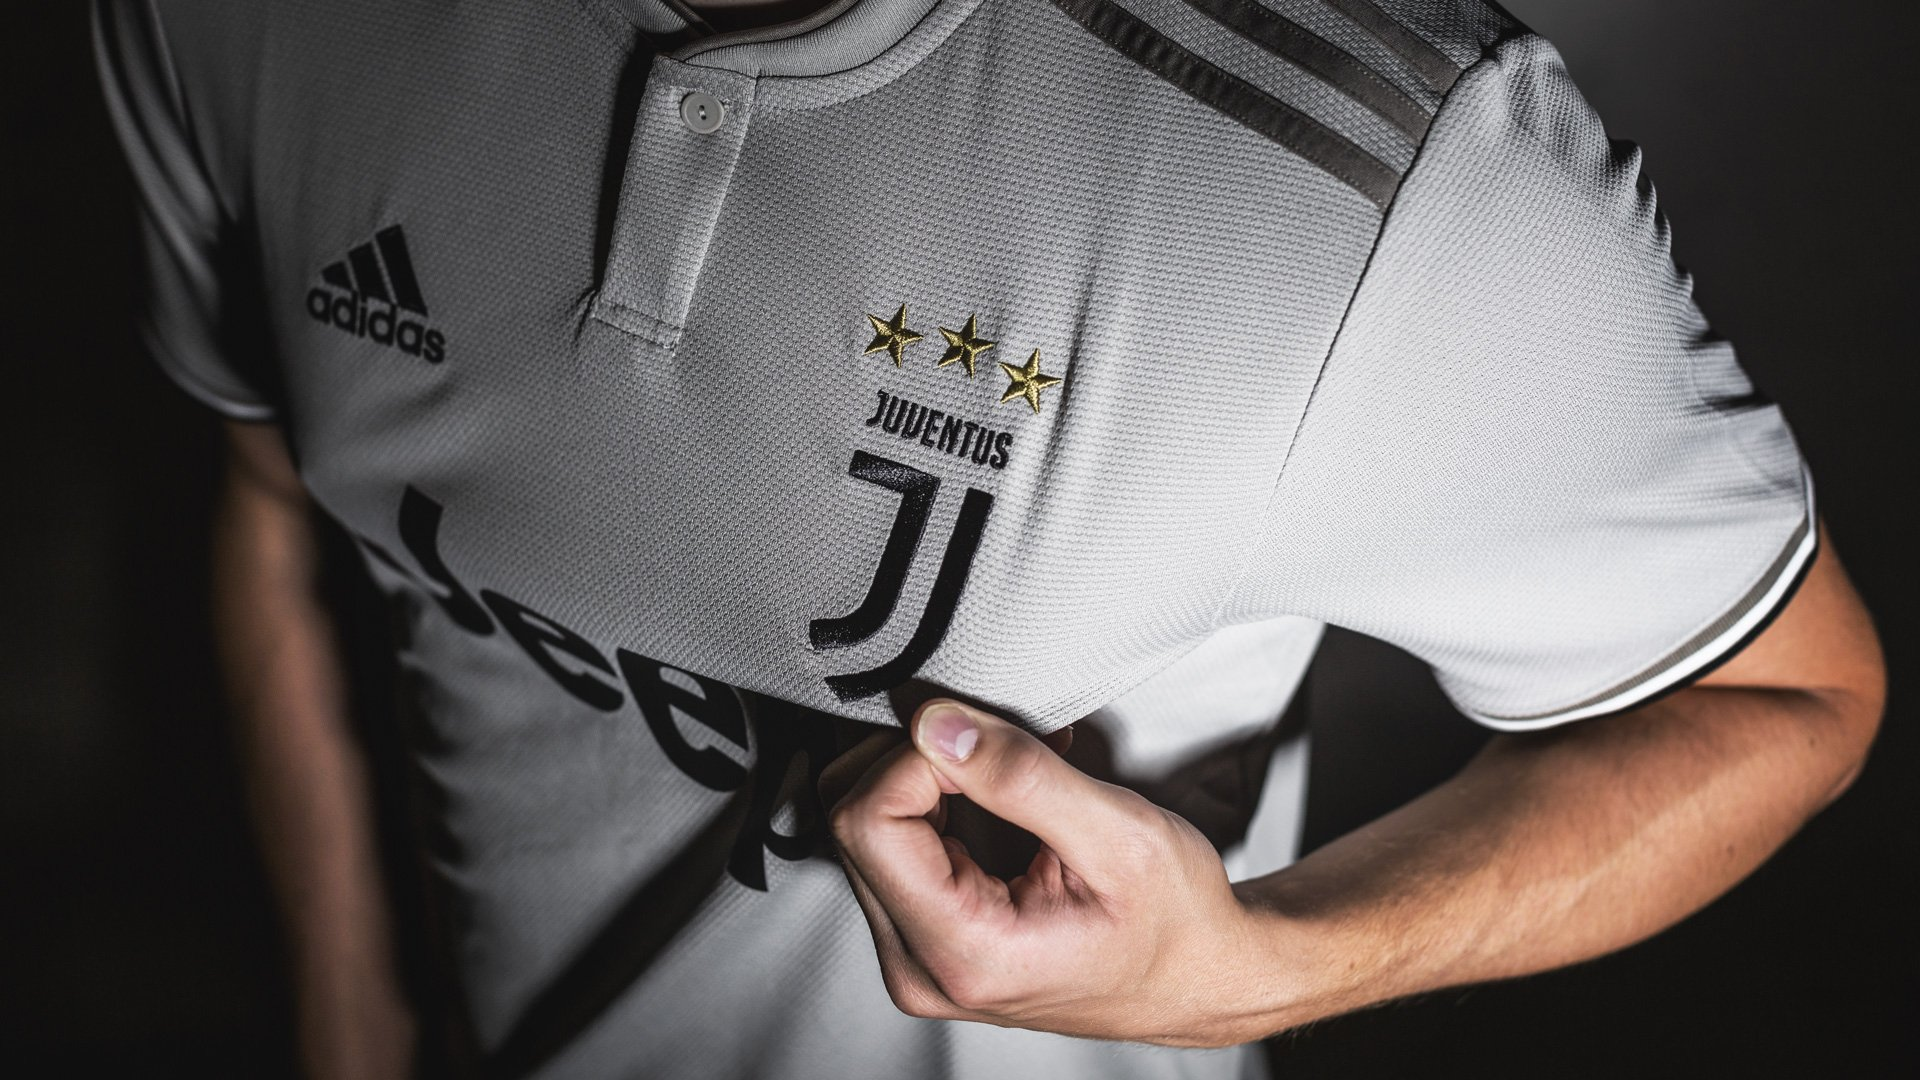 new product 4eaa8 d764d The new Juventus 2018/19 Away Shirt | Get it at Unisport